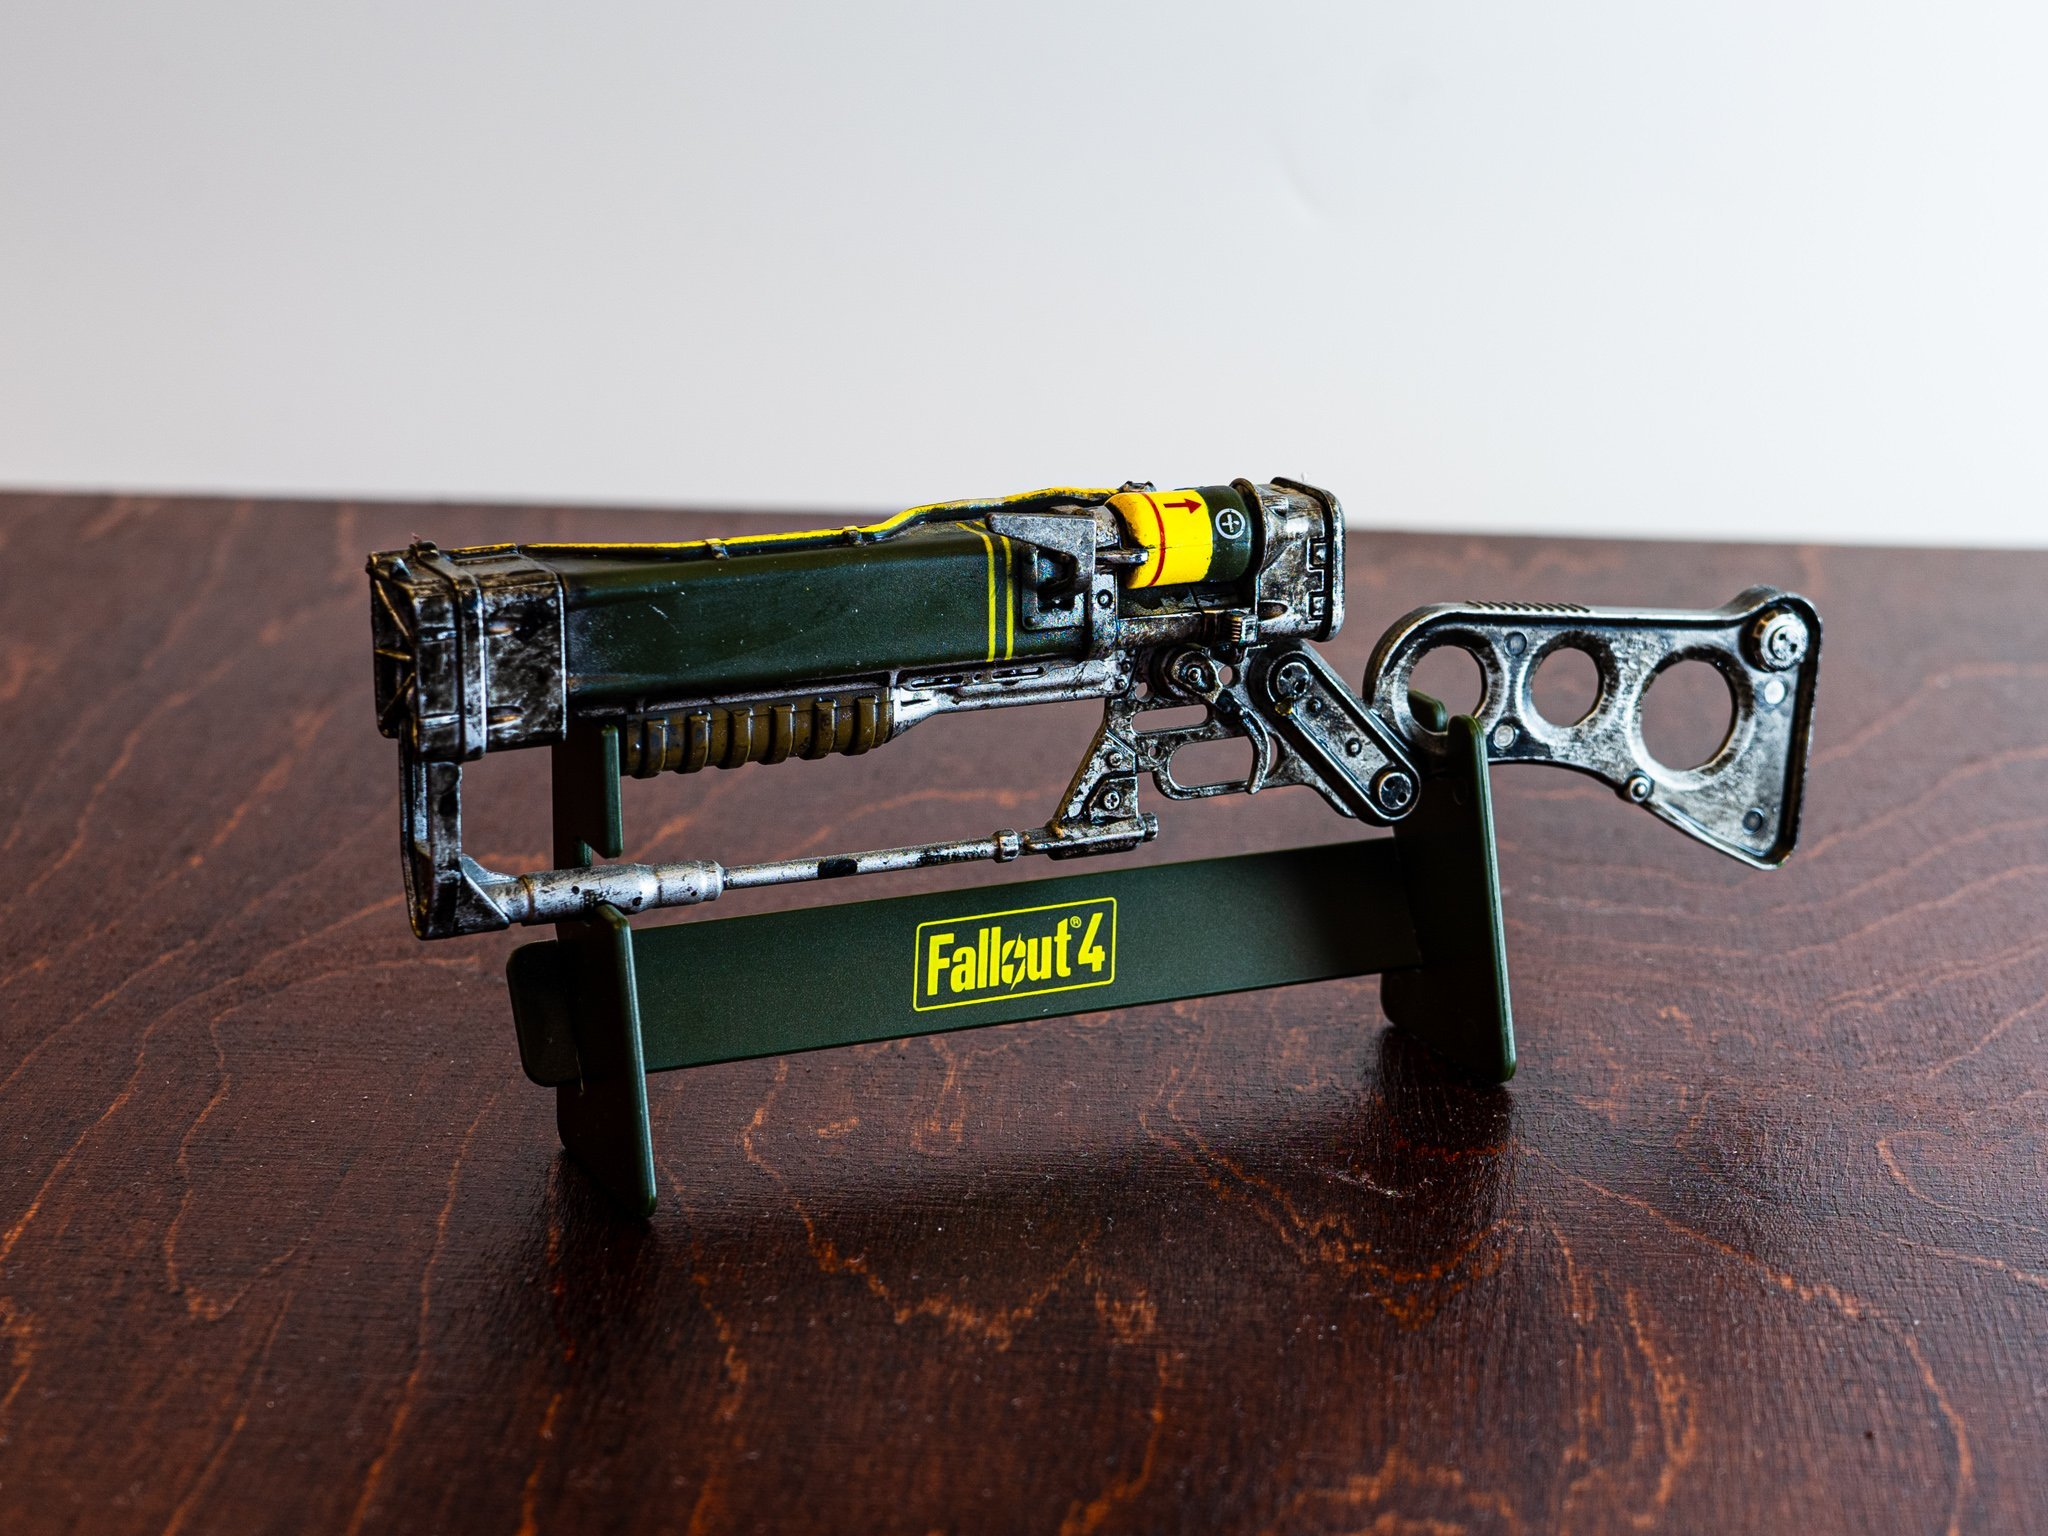 Fallout 4 AER9 Laser Rifle Replica